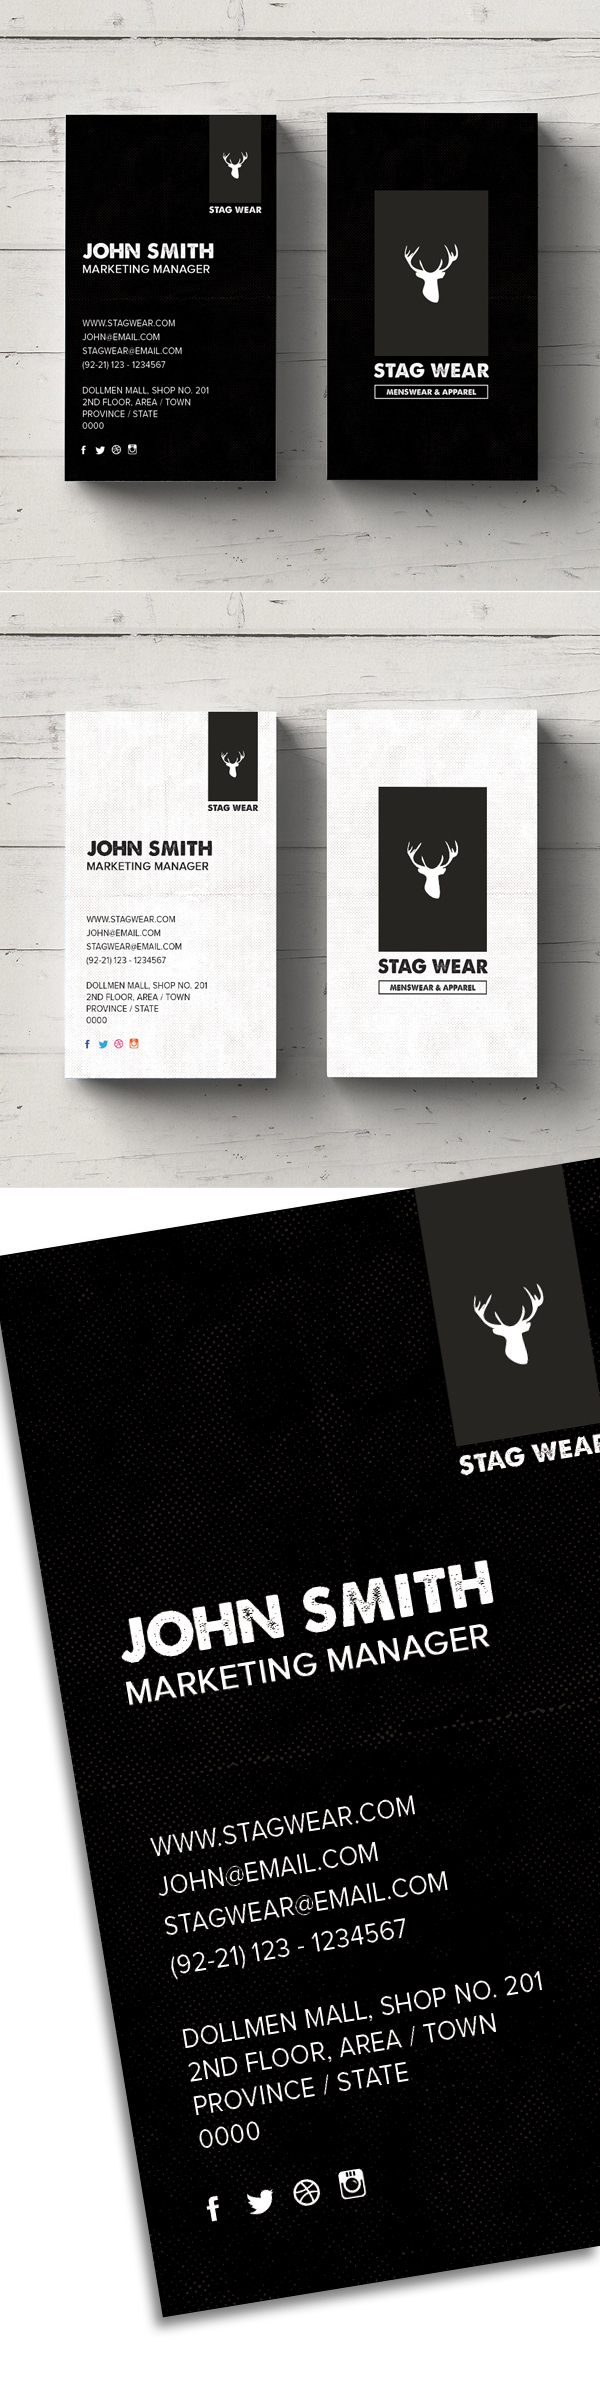 Freebie vertical business card psd template freebies graphic free vertical business card psd template cheaphphosting